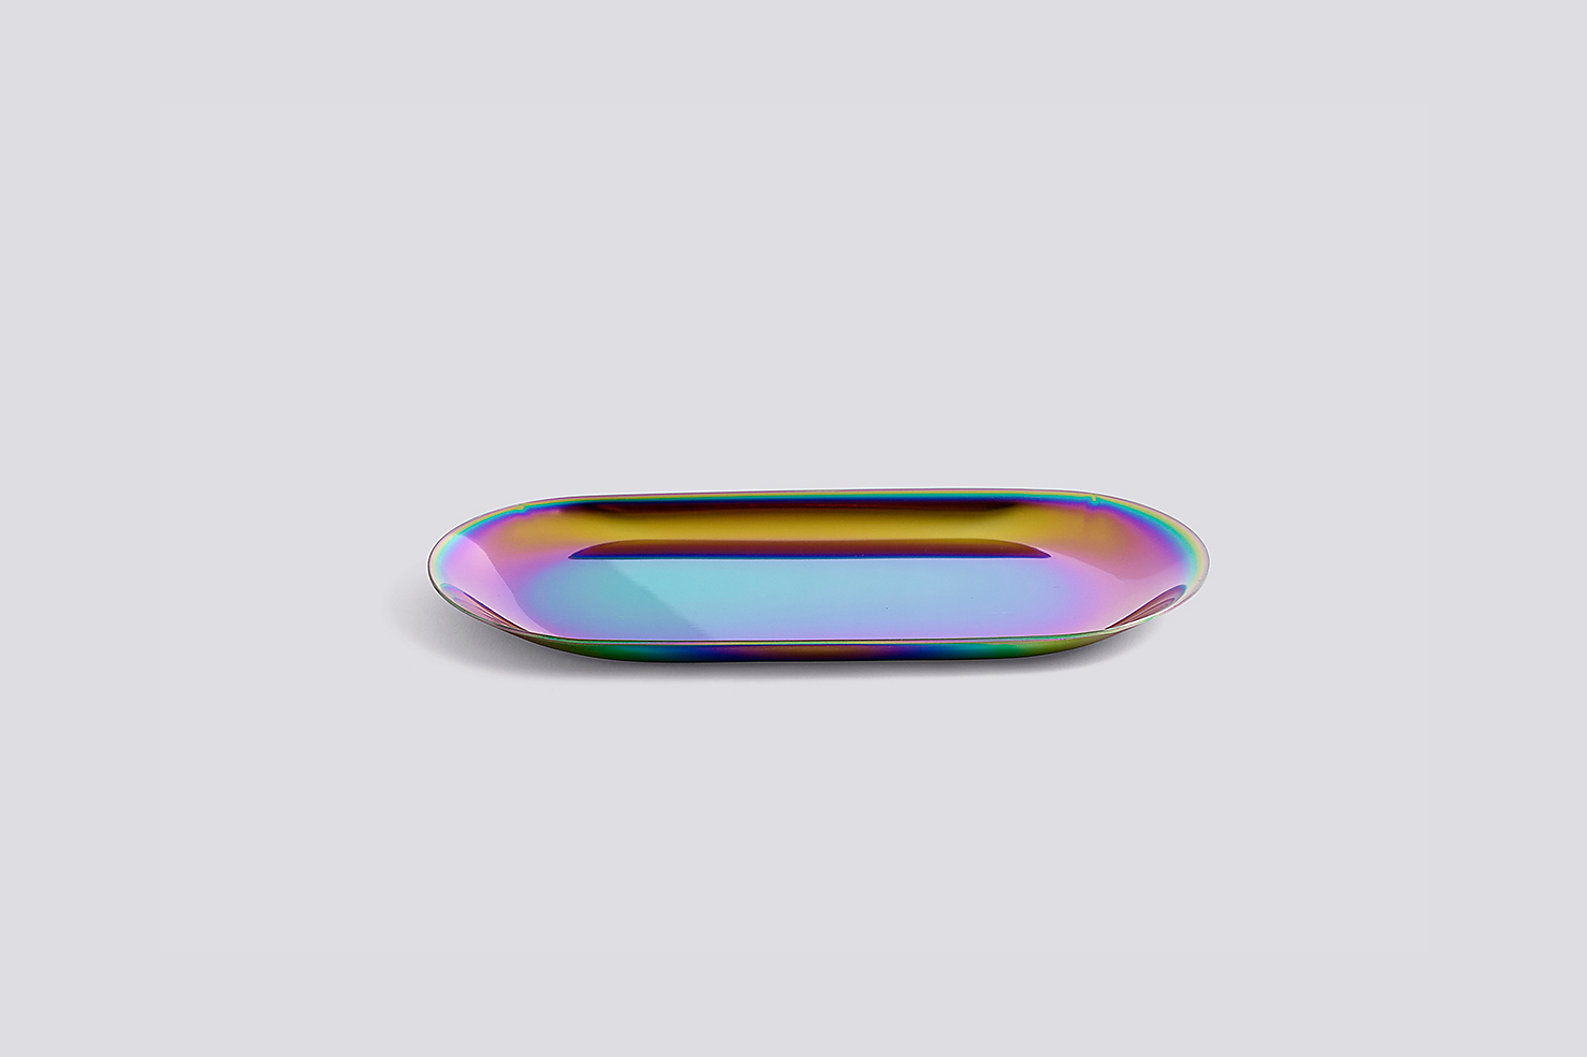 Rainbow iridescent tray from HAY